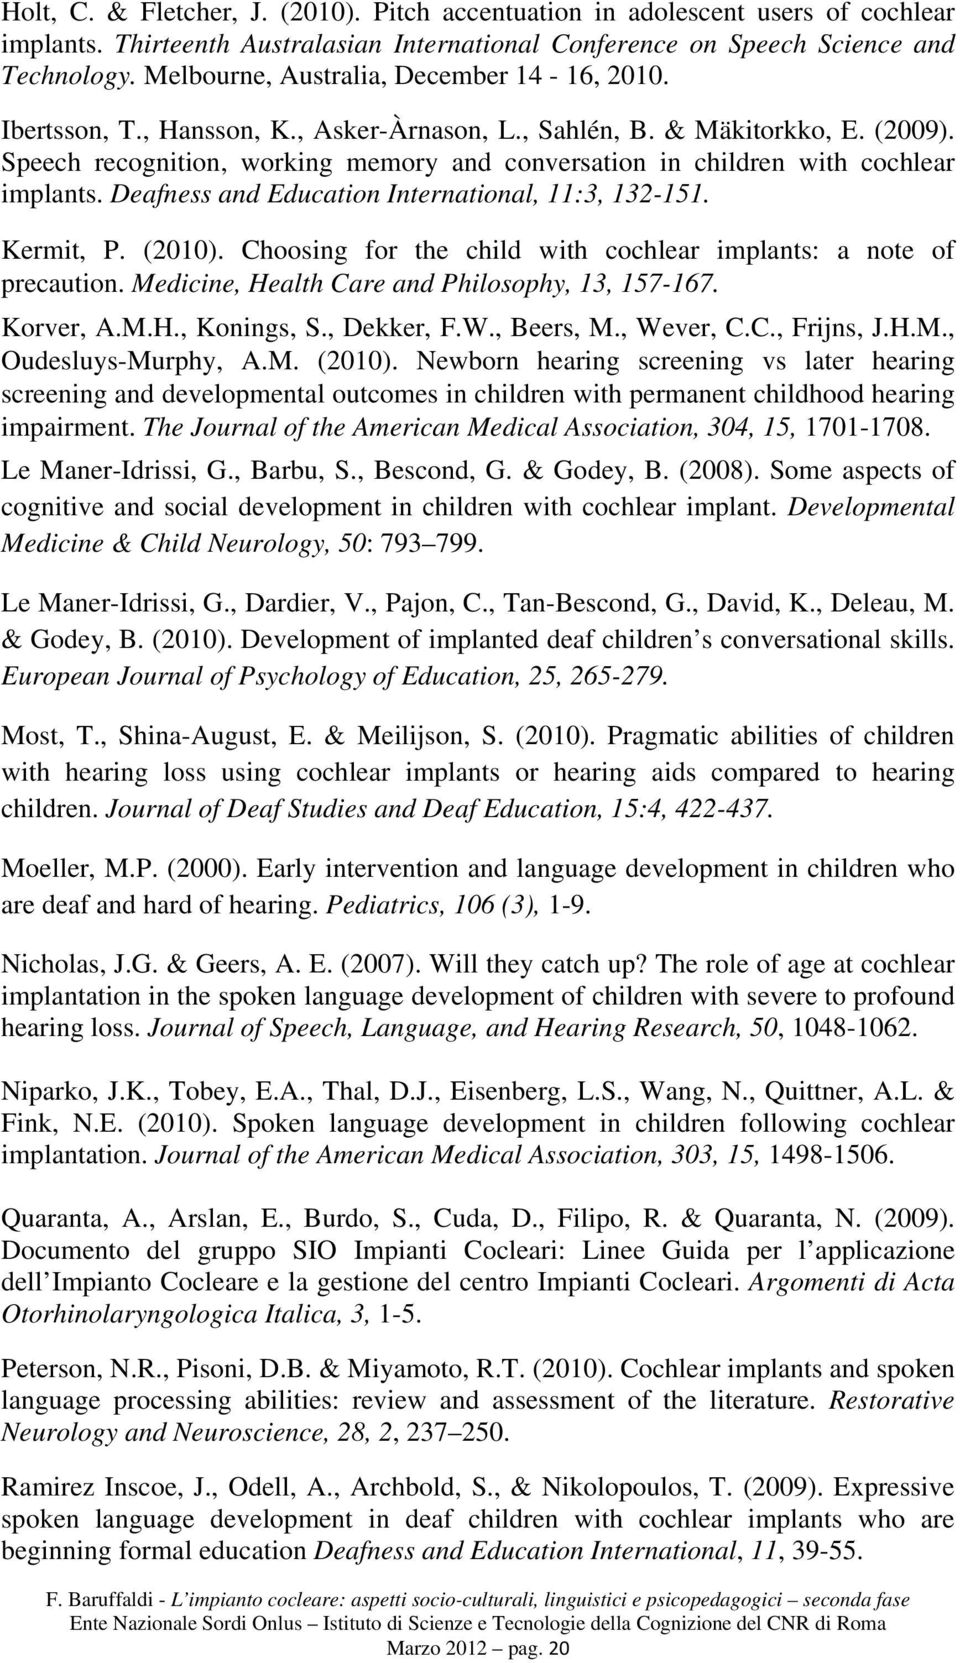 Speech recognition, working memory and conversation in children with cochlear implants. Deafness and Education International, 11:3, 132-151. Kermit, P. (2010).